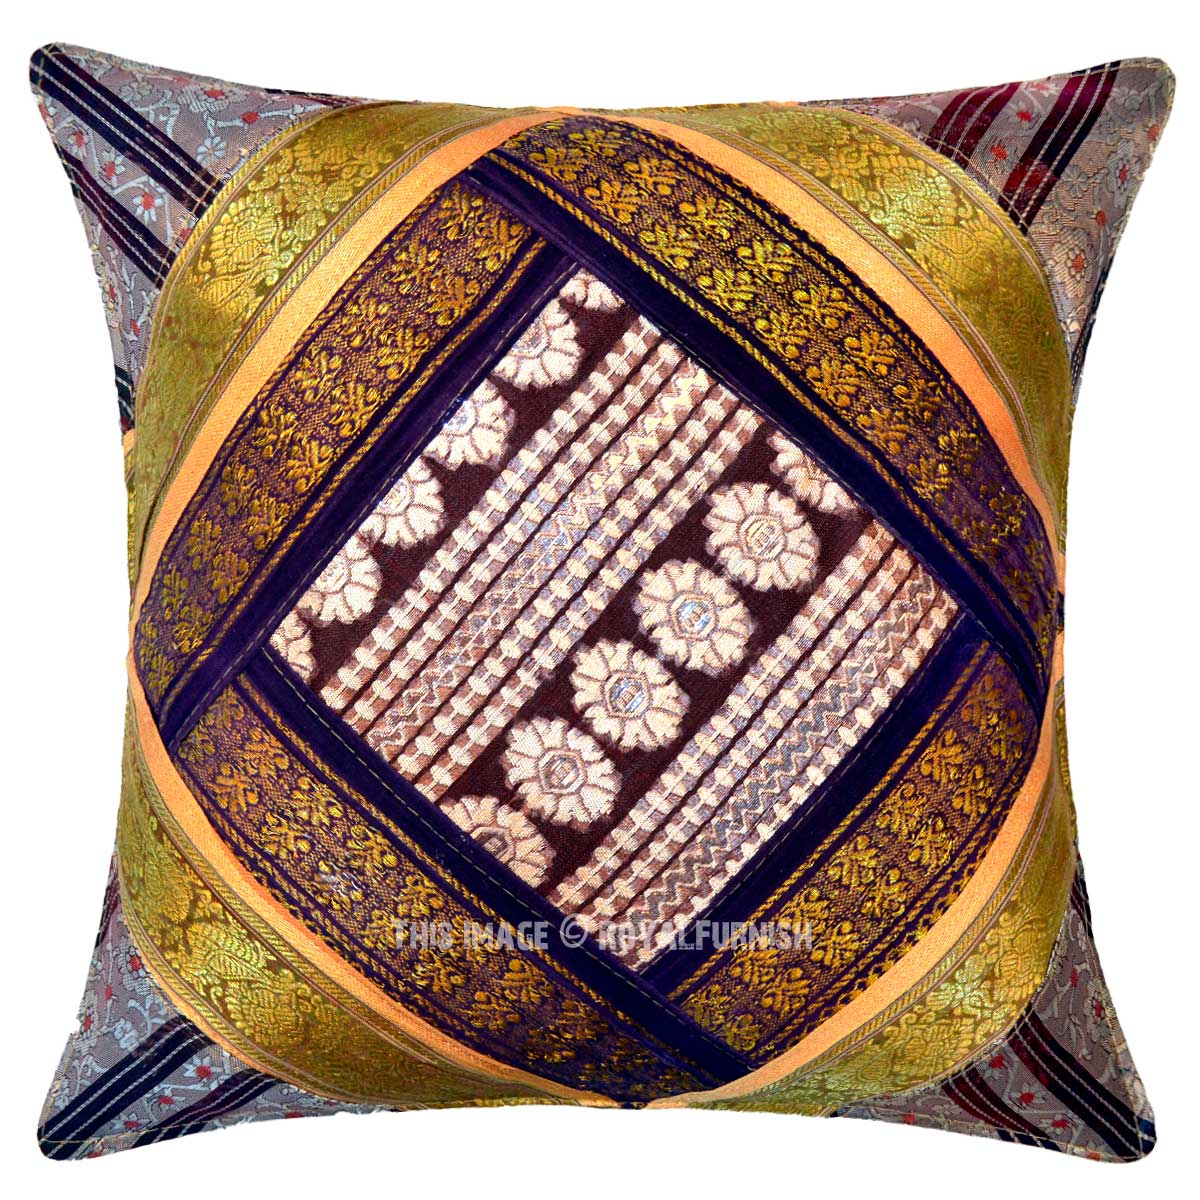 Multi Decorative Silk Sari Unique One-Of-A-Kind Throw Pillow Cover 16X16 Inch - RoyalFurnish.com